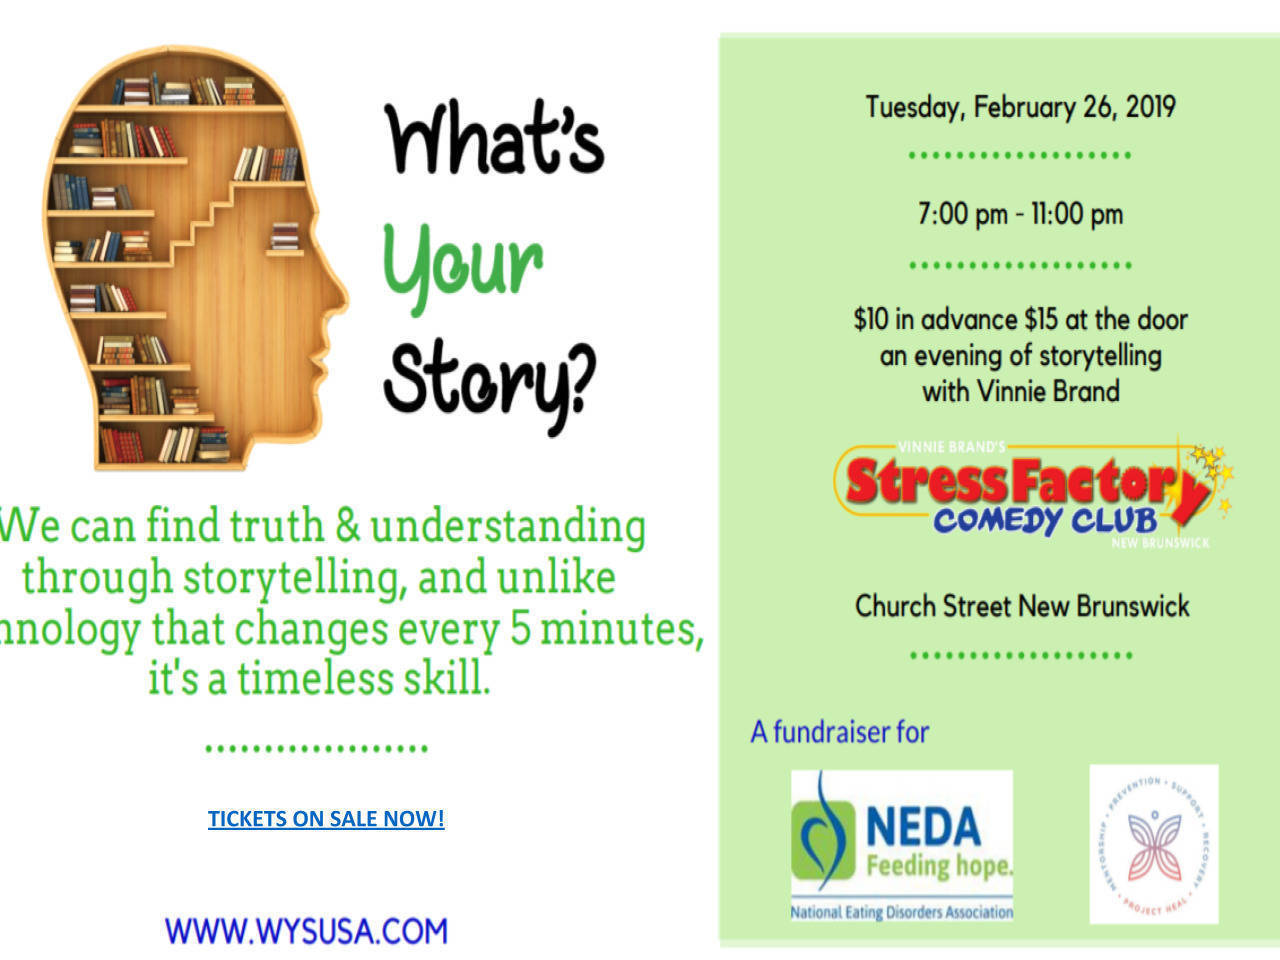 What's Your Story? on 2/26 at Stress Factory